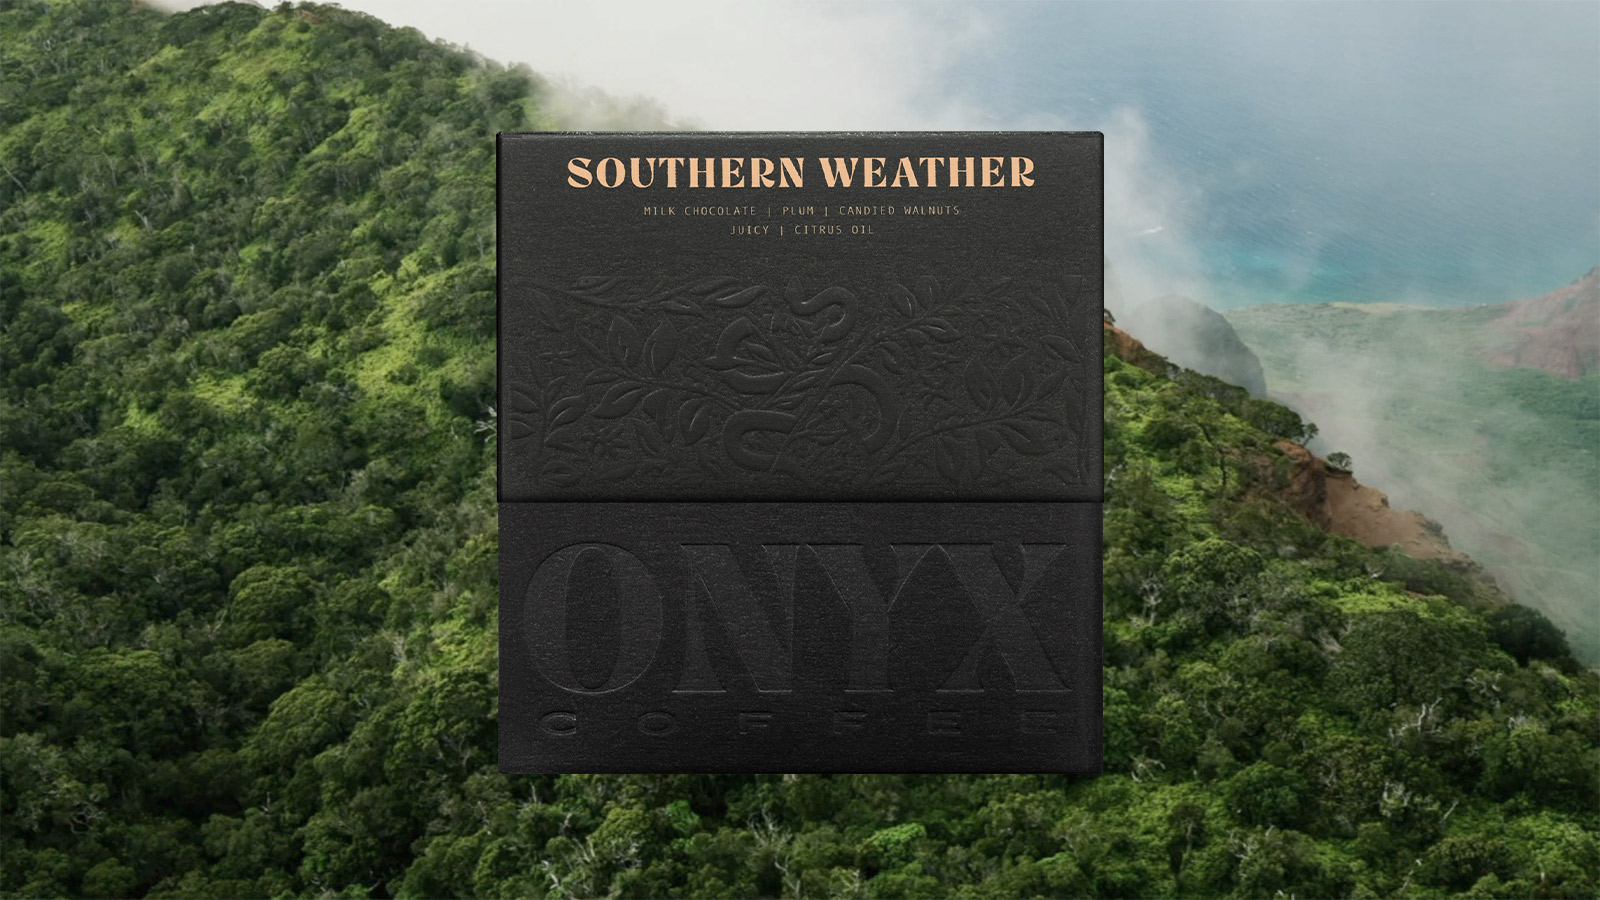 Onyx Coffee LabSouthern Weather